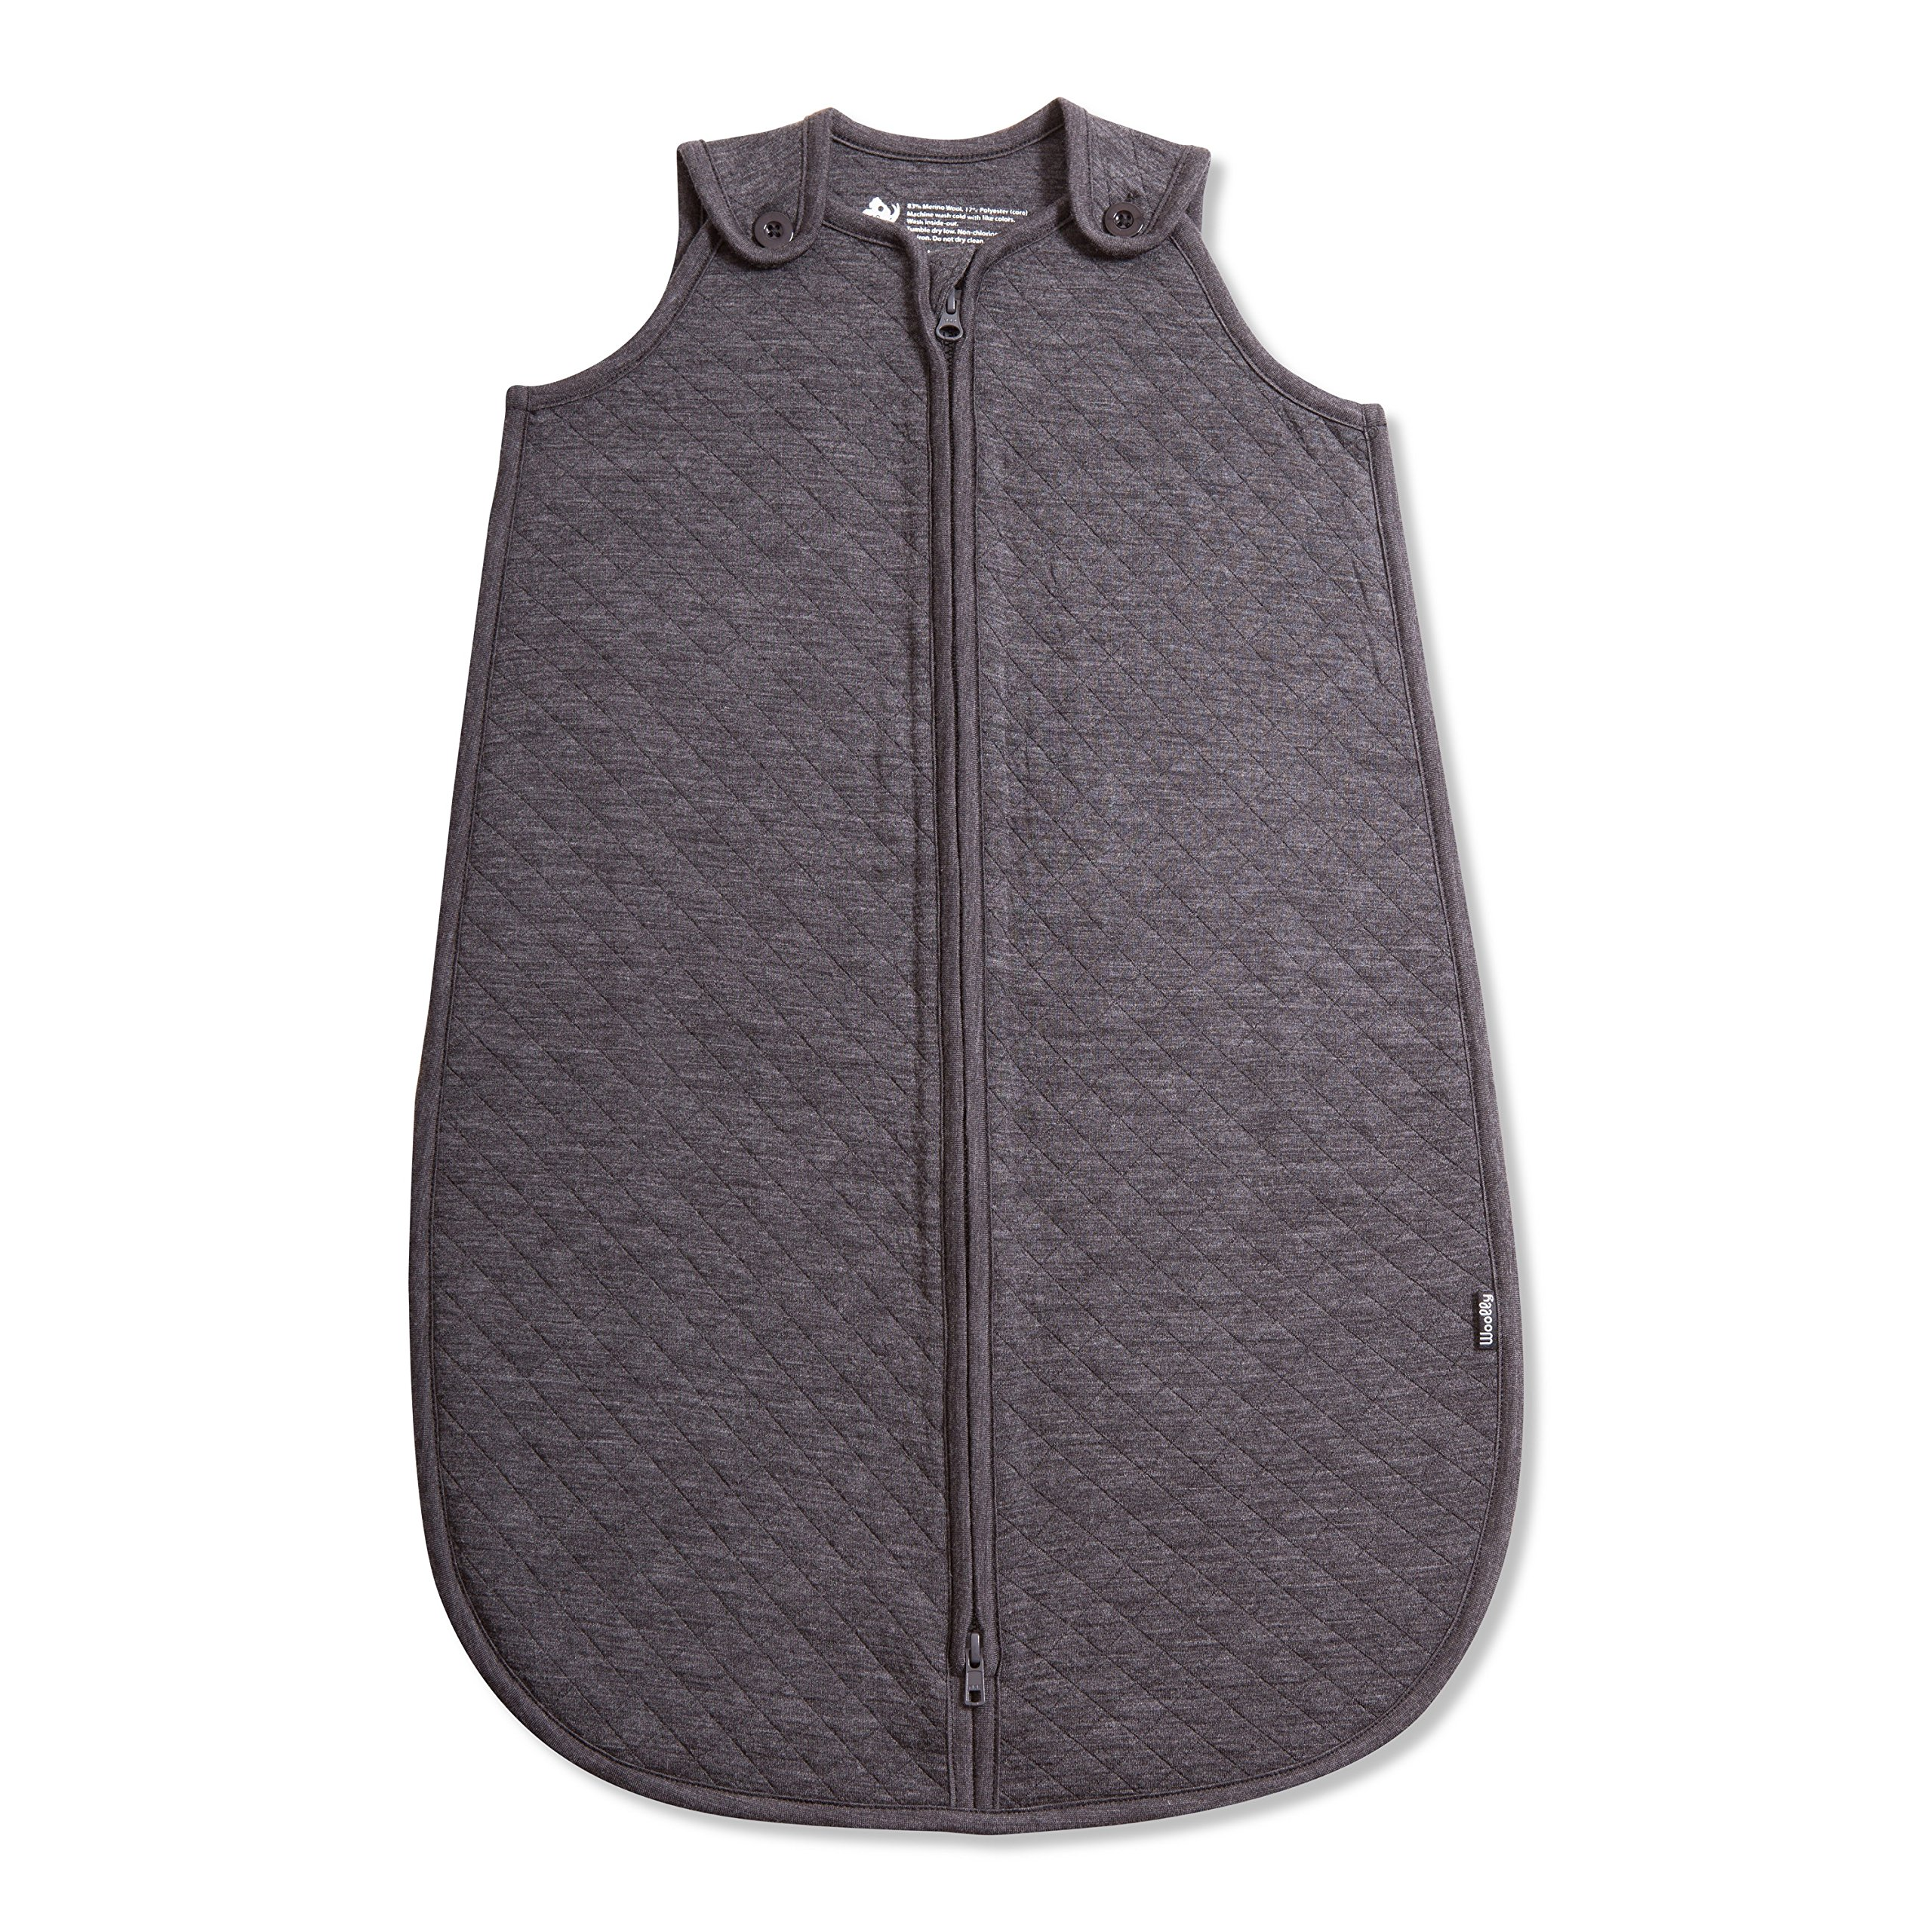 Woolly Clothing Co Merino Wool Quilted Infant Sleep Sack (310 GSM) Charcoal 6 to 18 Months